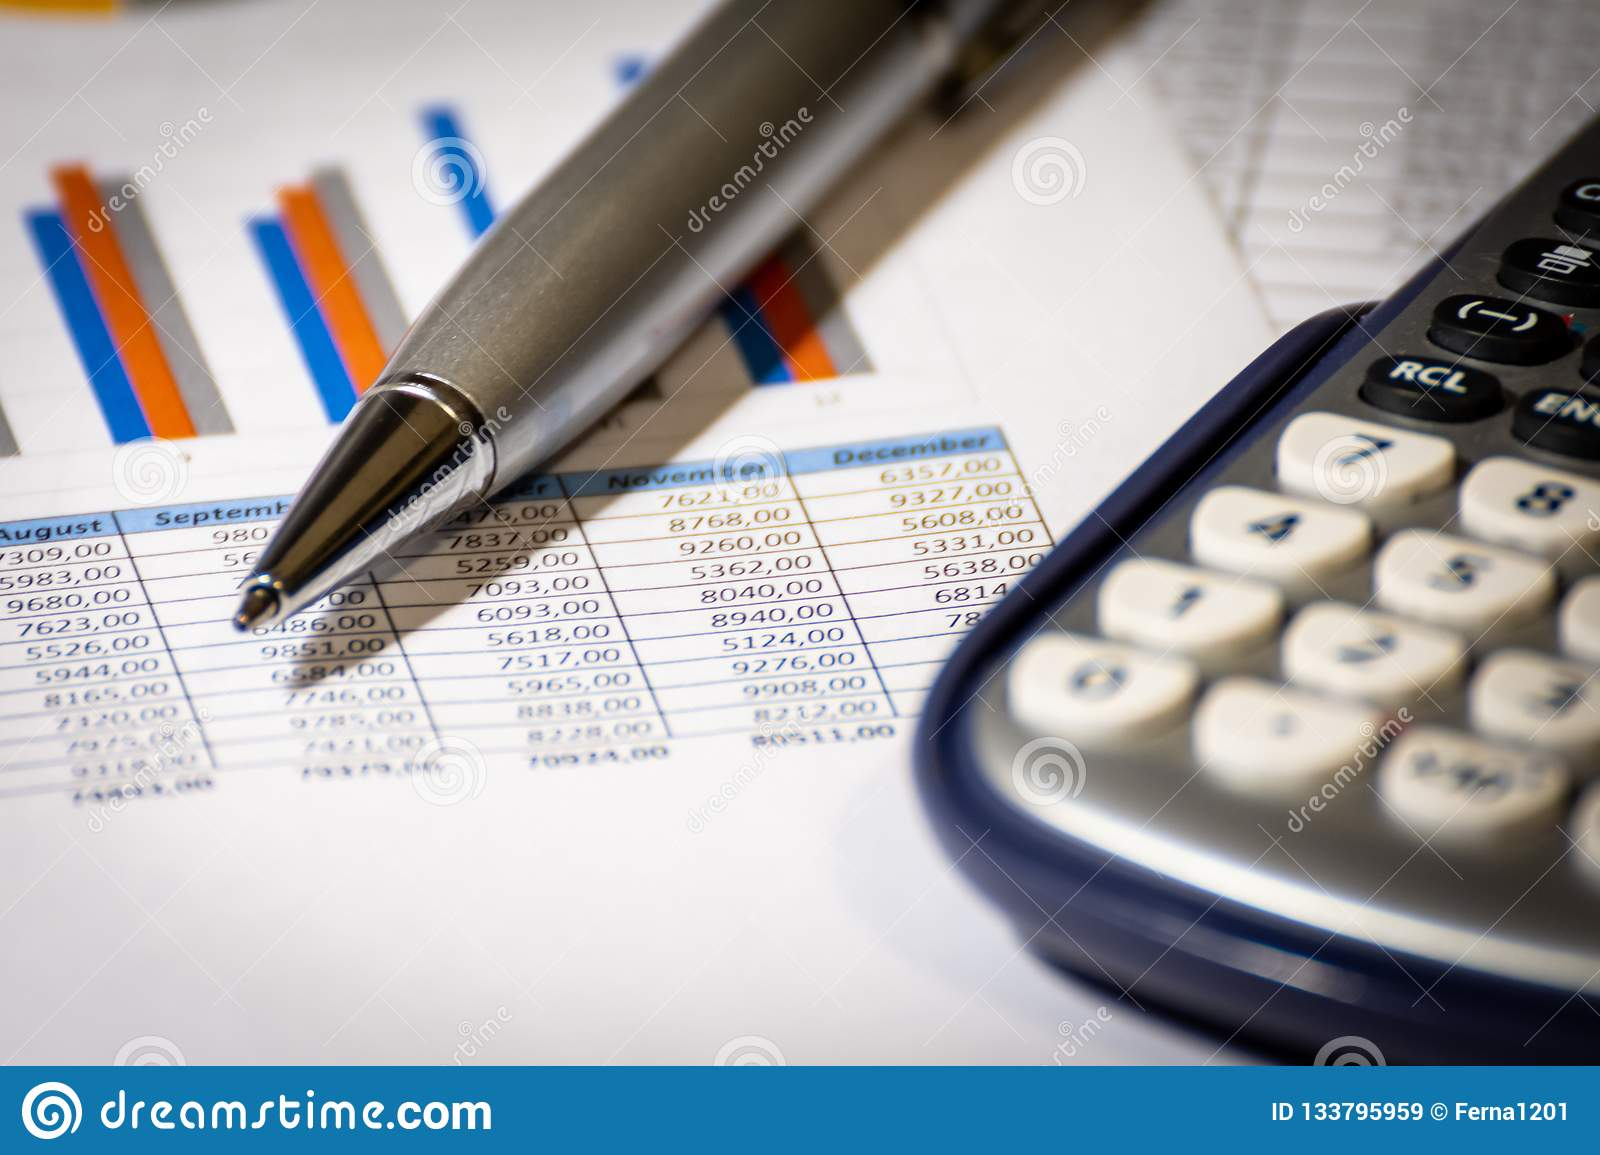 Finance, business budget planning and analysis concept, graph report with calculator on office desk